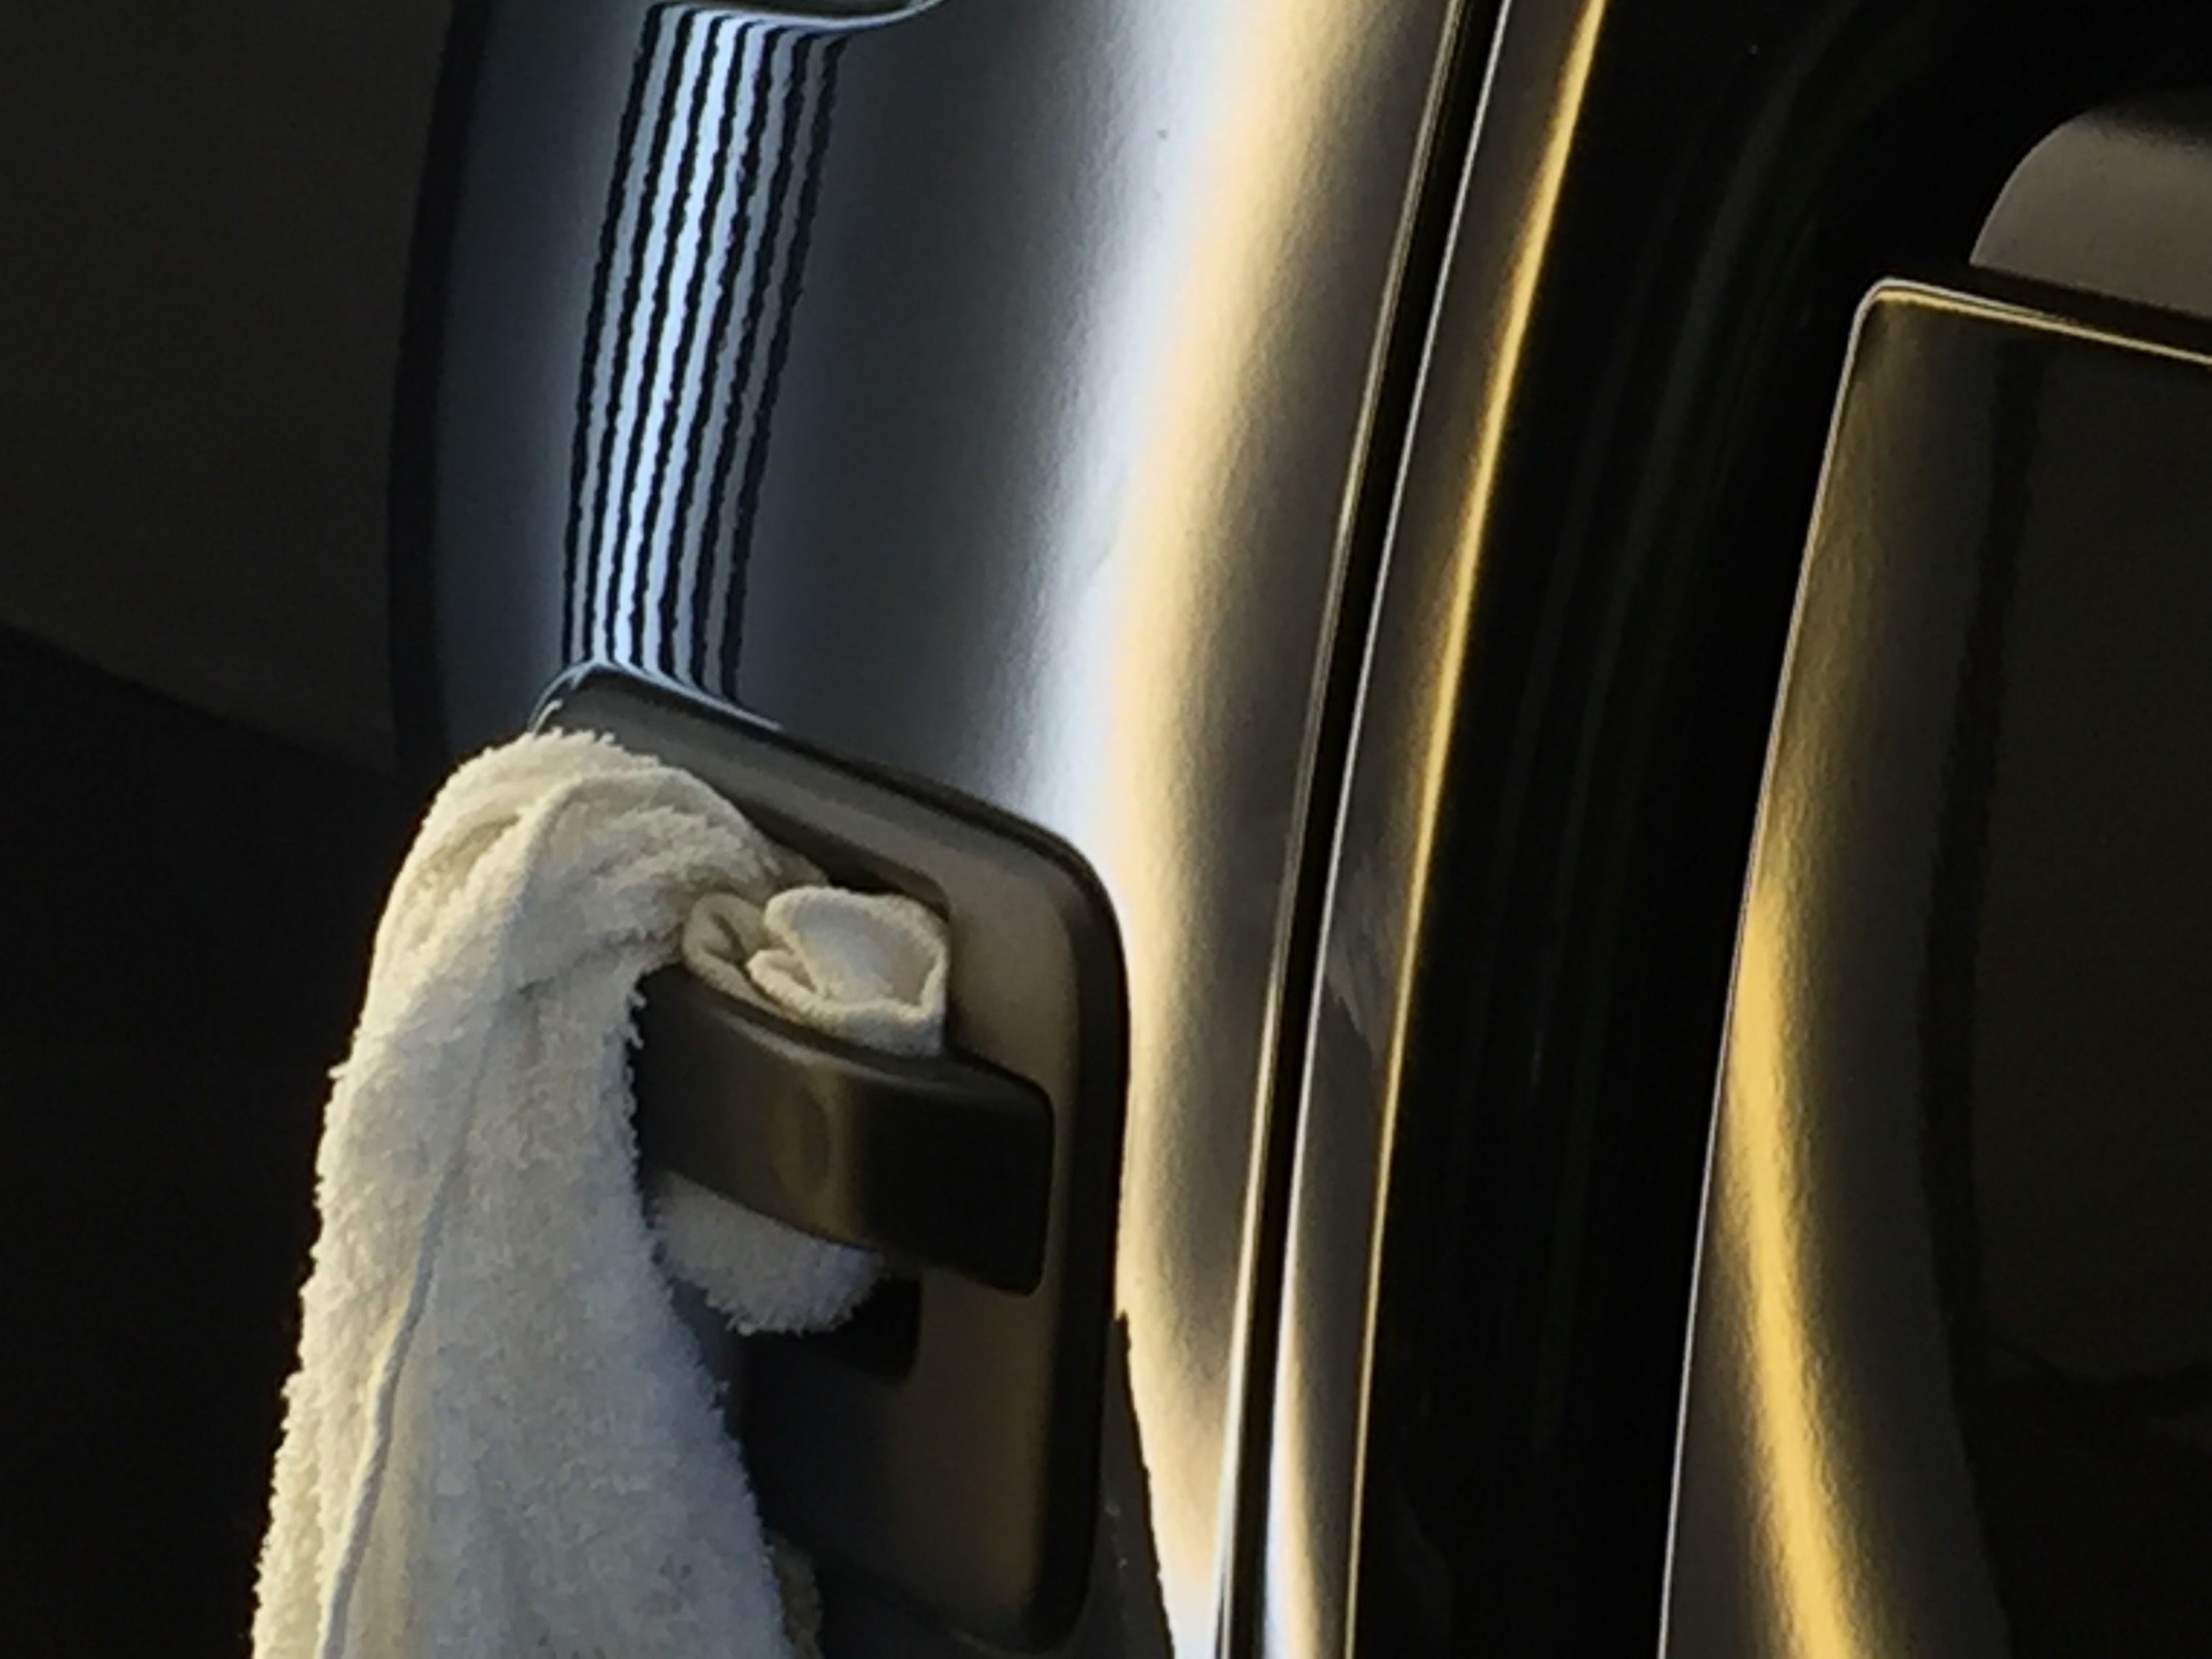 http://217dent.com 2014 Ford F-150 Dent Repair, Michael Bocek out of Springfield, IL. Drivers Side Rear Door, all glue pull dent removal. Paintless Dent Repair, Paintless Dent Removal, Taylorville, Decatur, Pana, IL